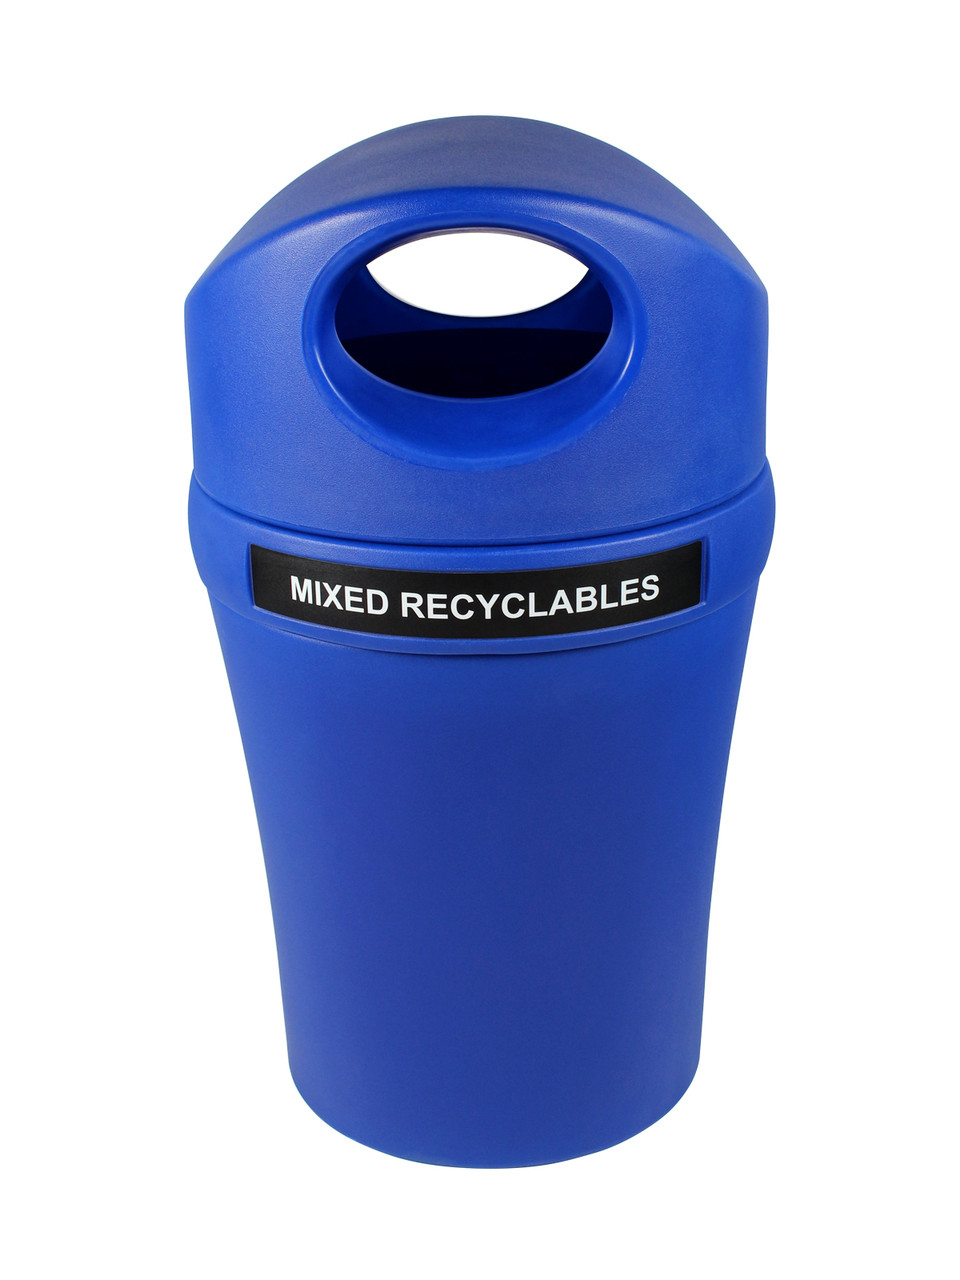 Mixed Recyclables-Blue/Blue